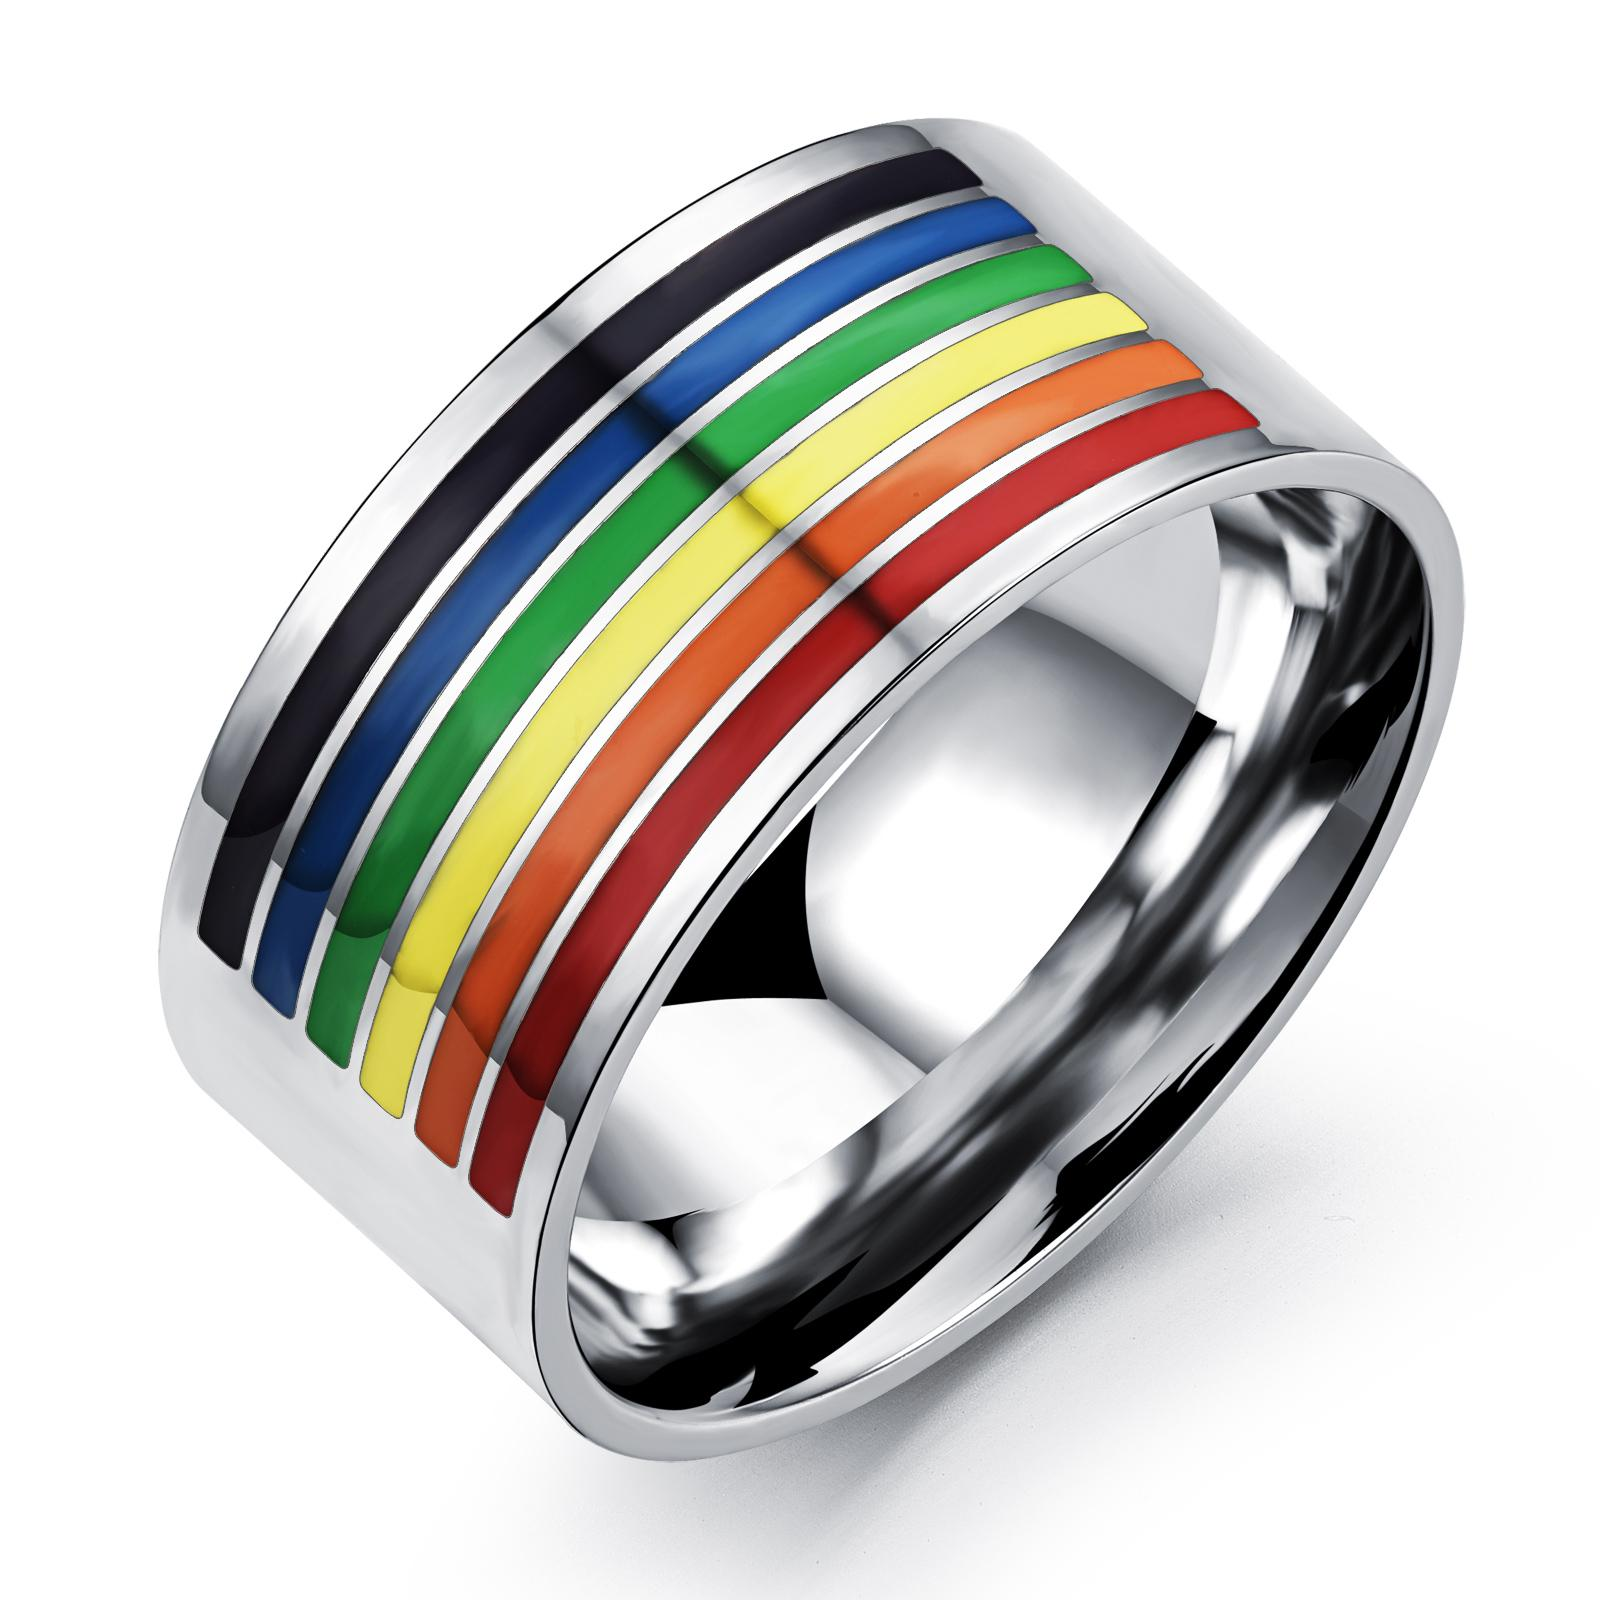 in bands wholesale steel lara color jewelry comrades rings fashion six rainbow gay from item silver wedding ring stainless titanium half new